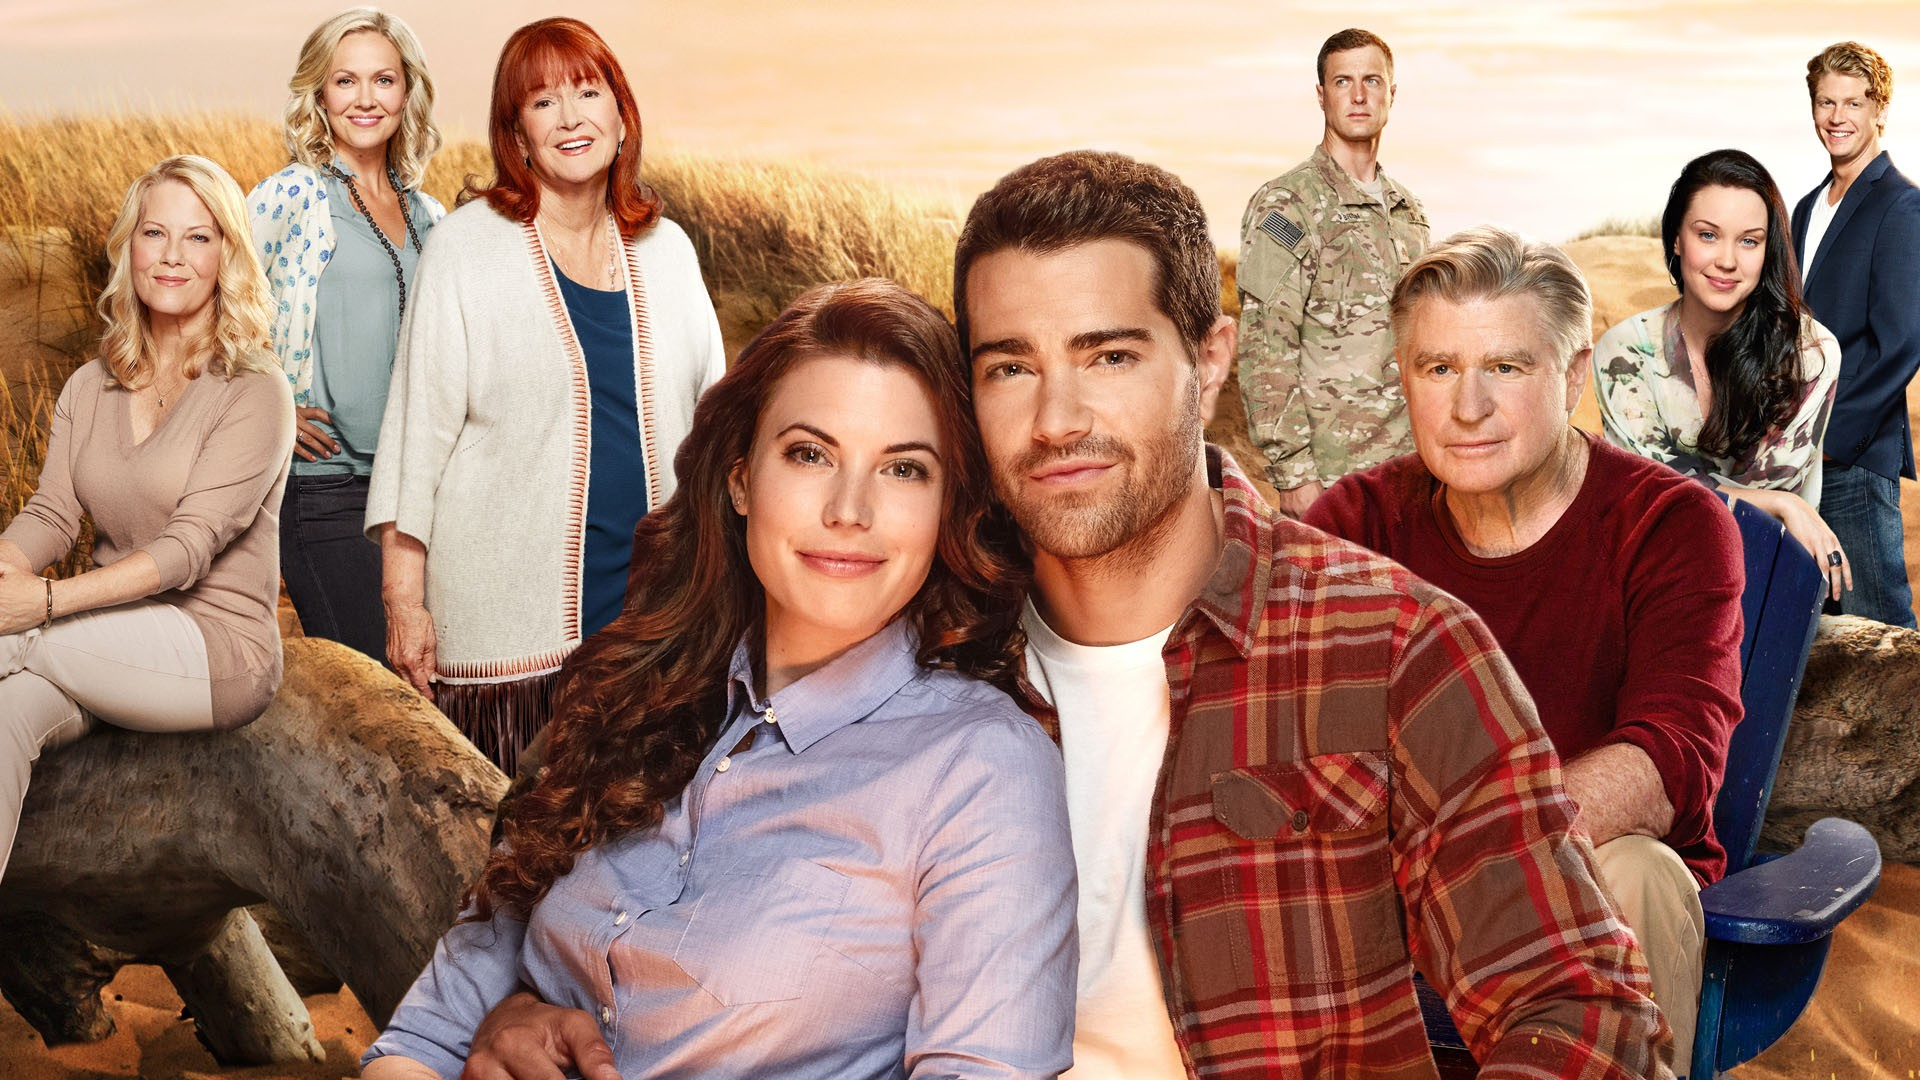 Chesapeake Shores will have a fifth season